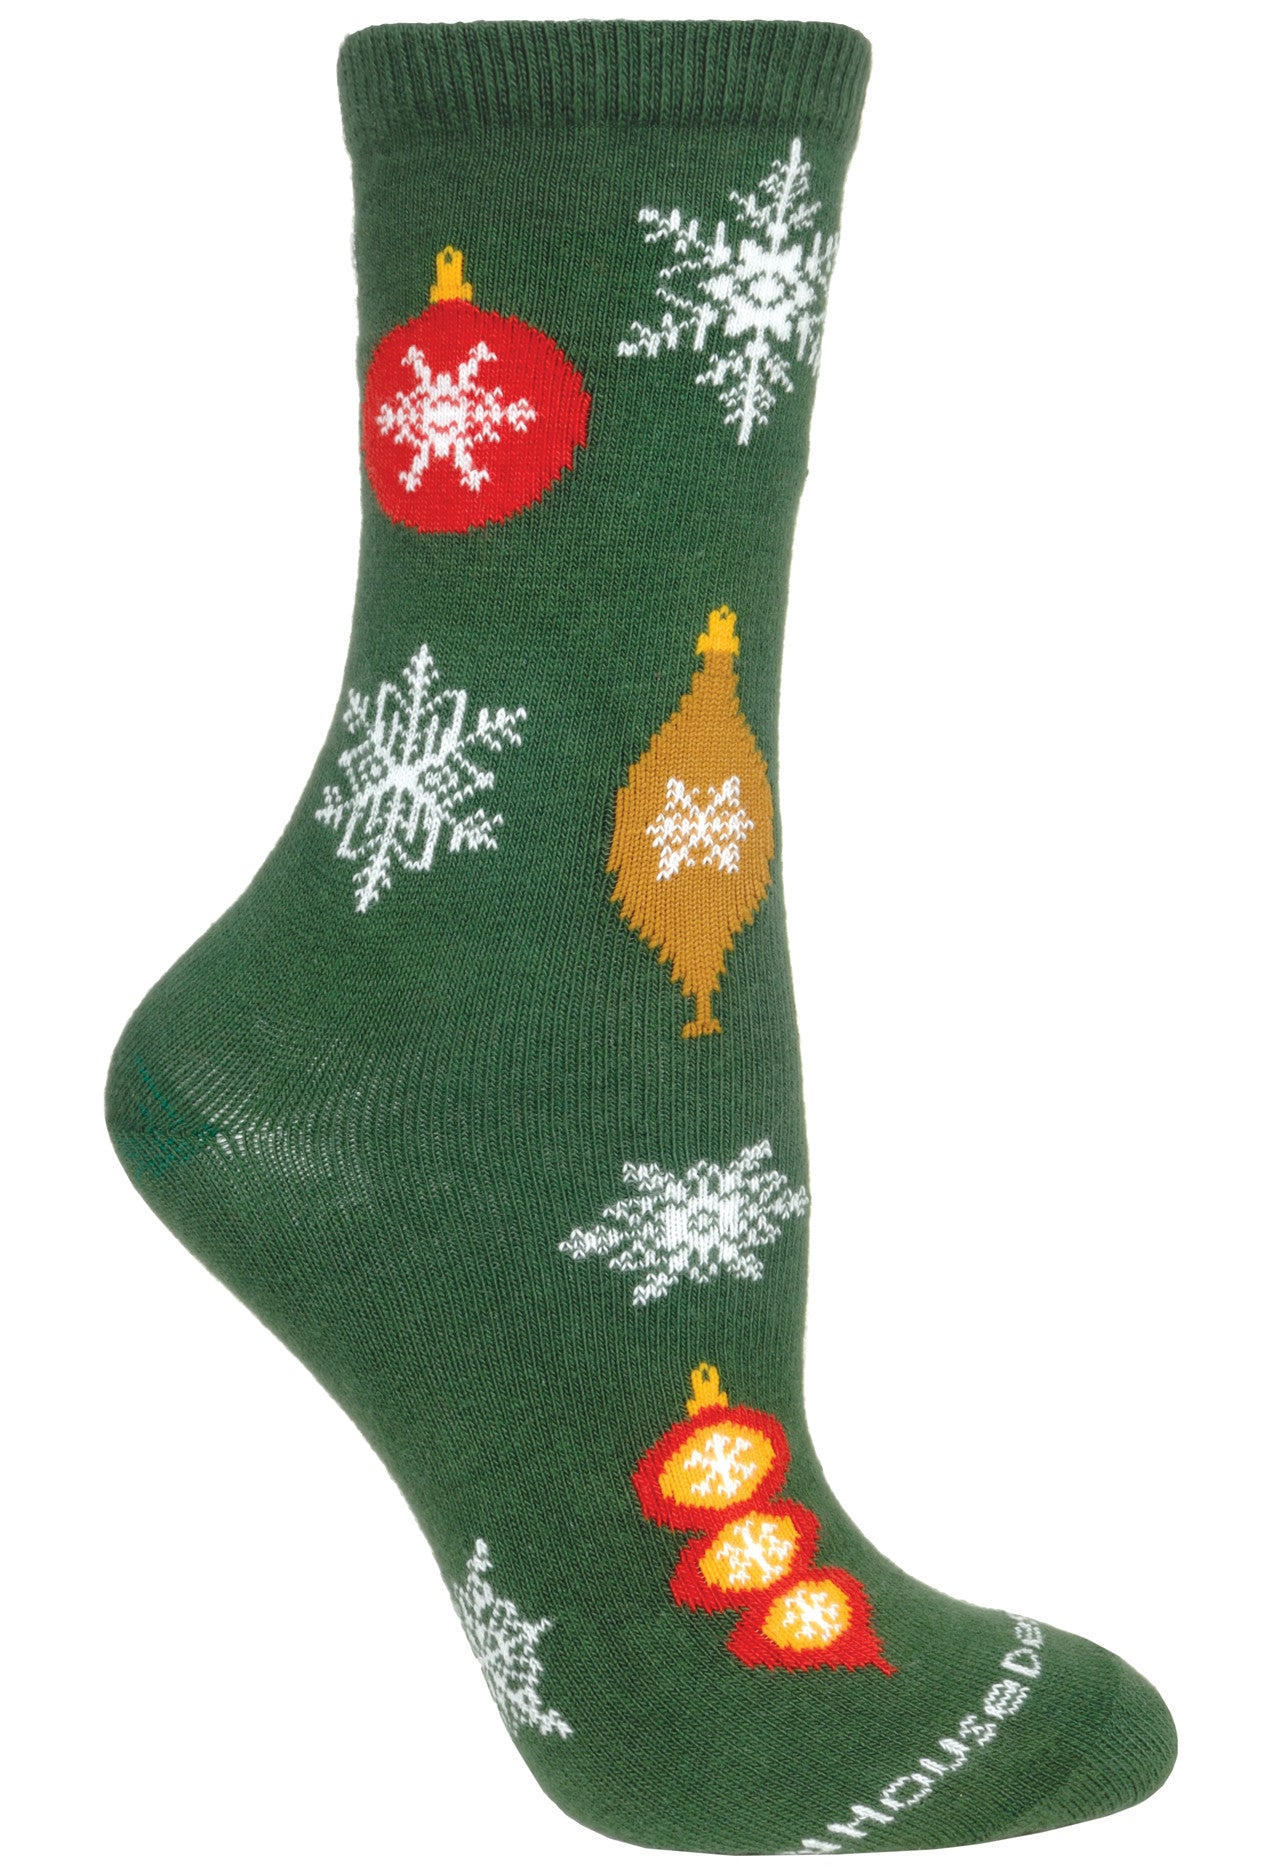 Ornaments on Hunter Socks